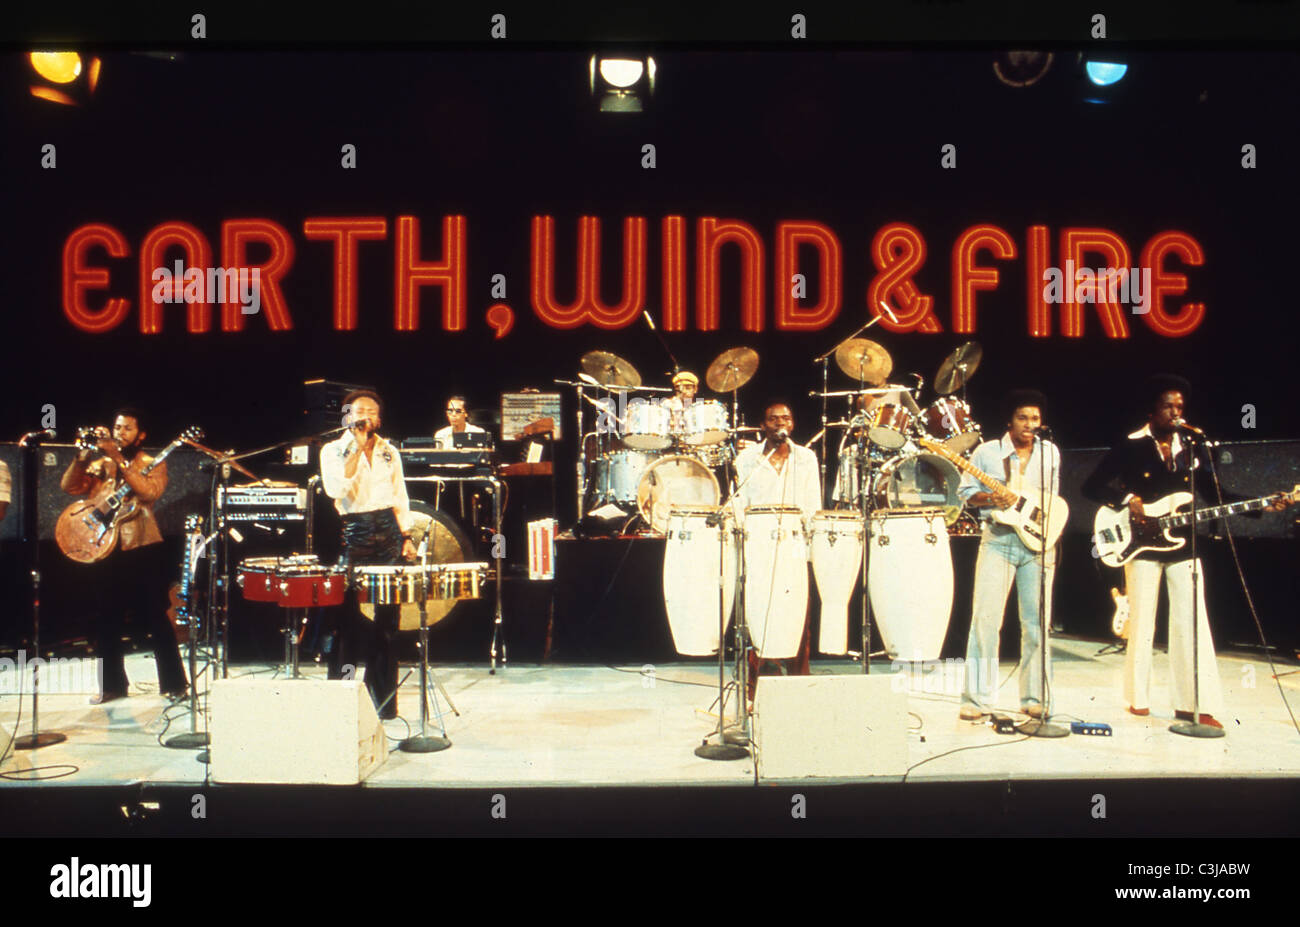 EARTH WIND & FIRE  US rock group about 1978. Photo Jeffrey Mayer - Stock Image